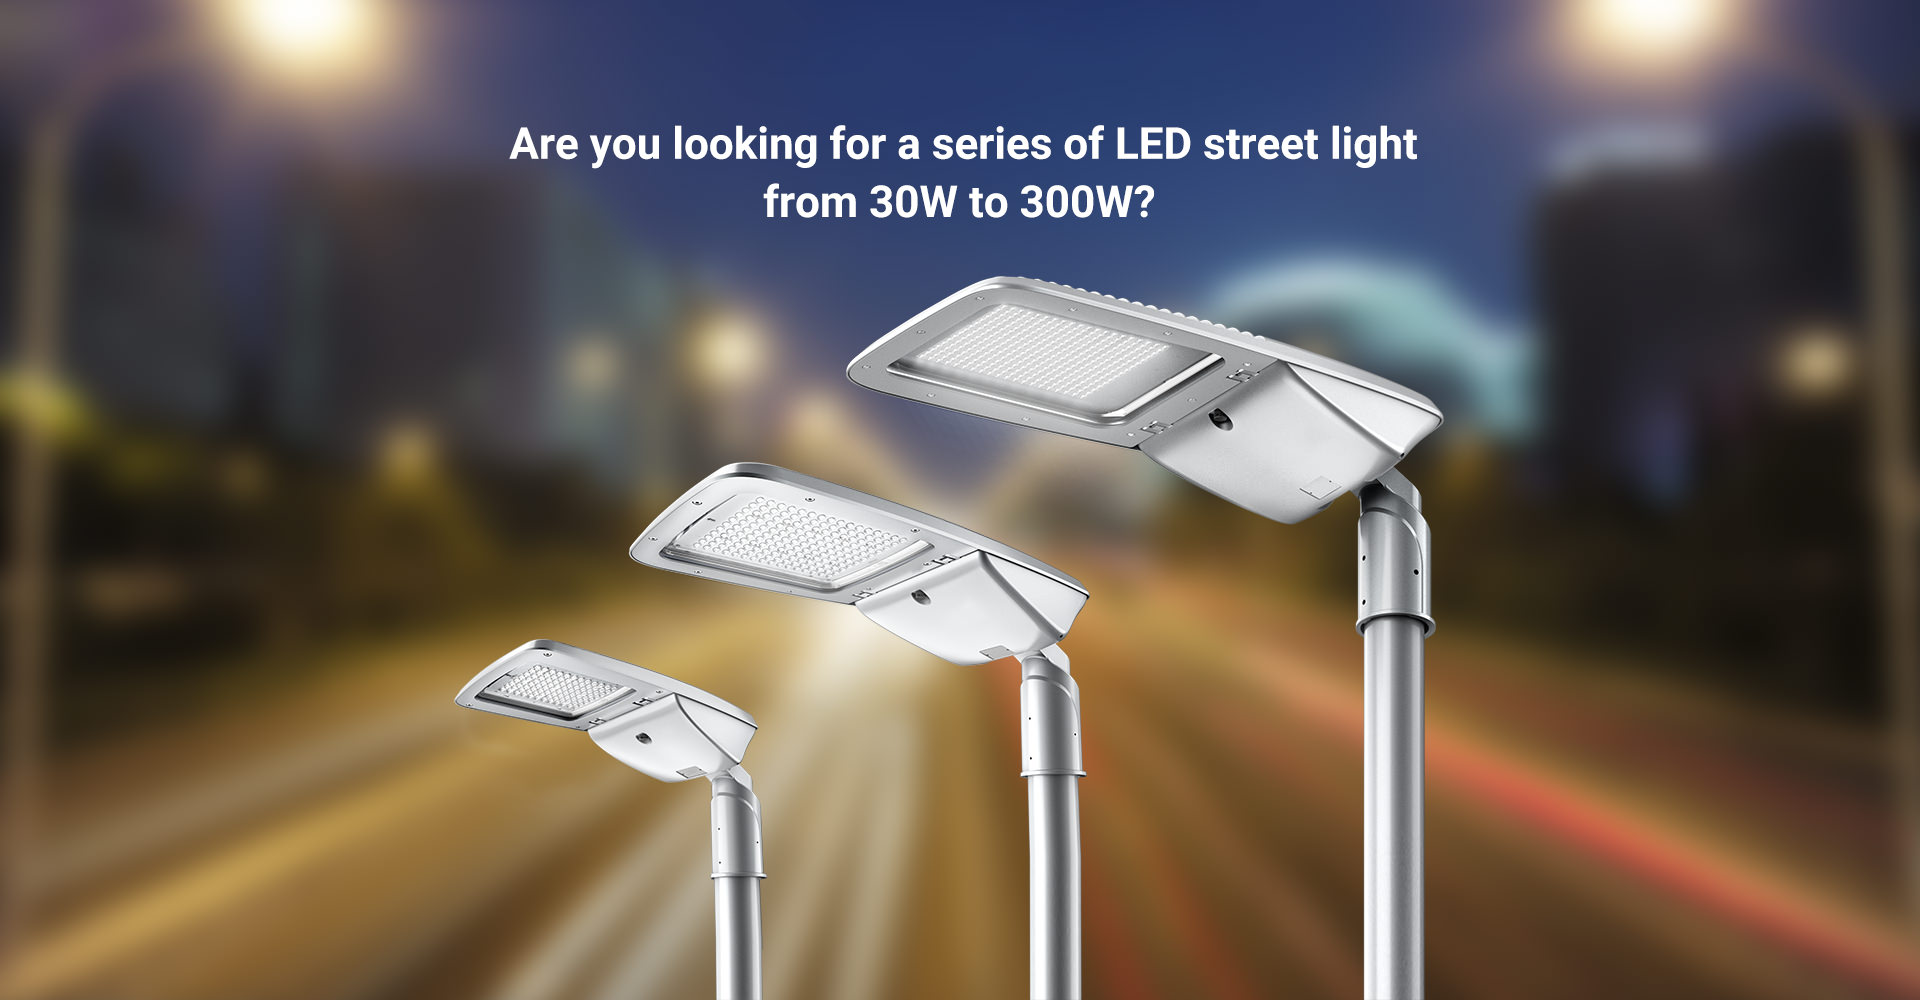 Hismooth X Led Street Light Agc Lighting